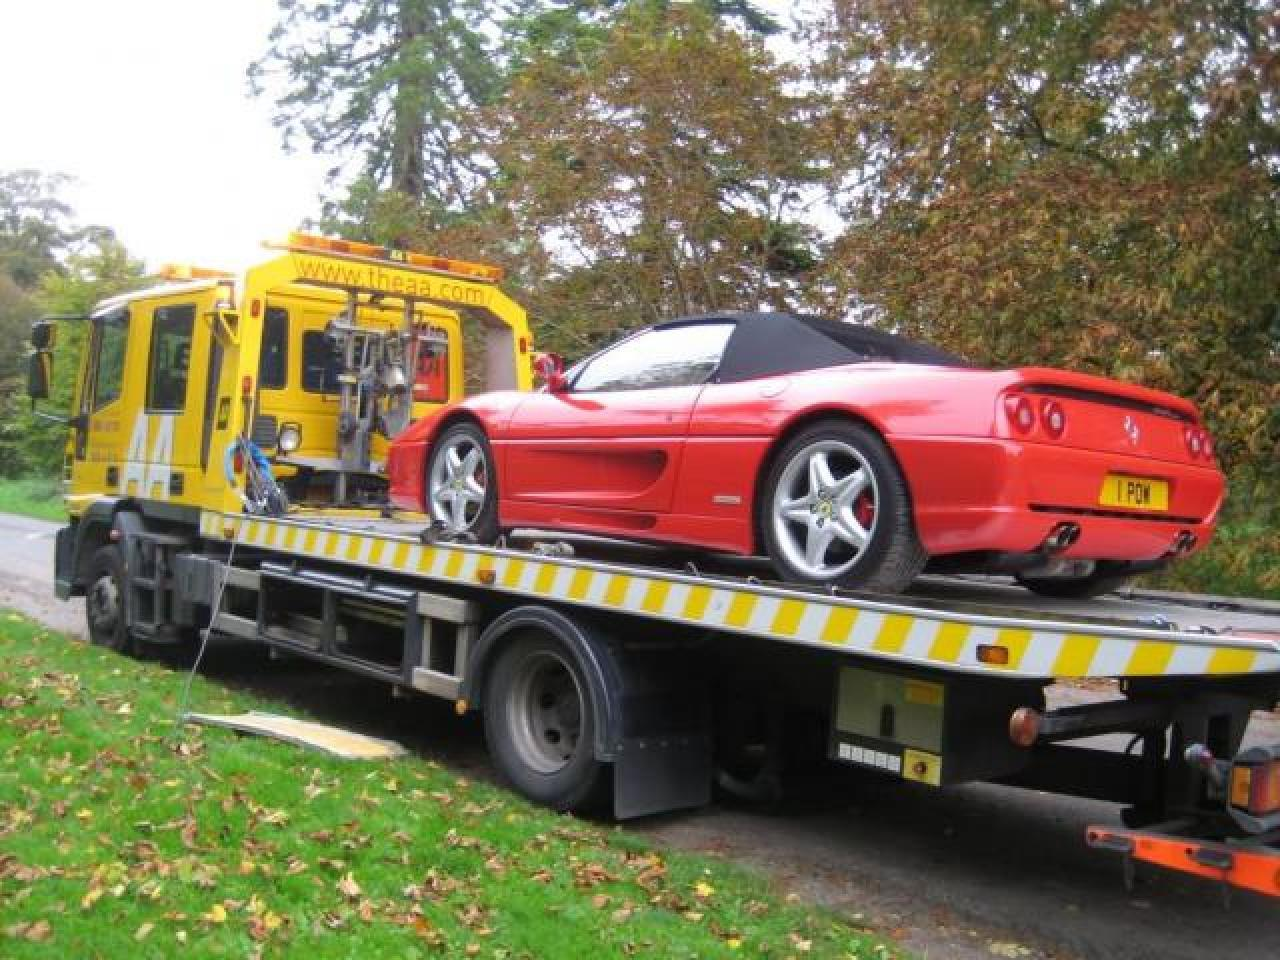 24/7 Recovery Service 07906422226 - 1